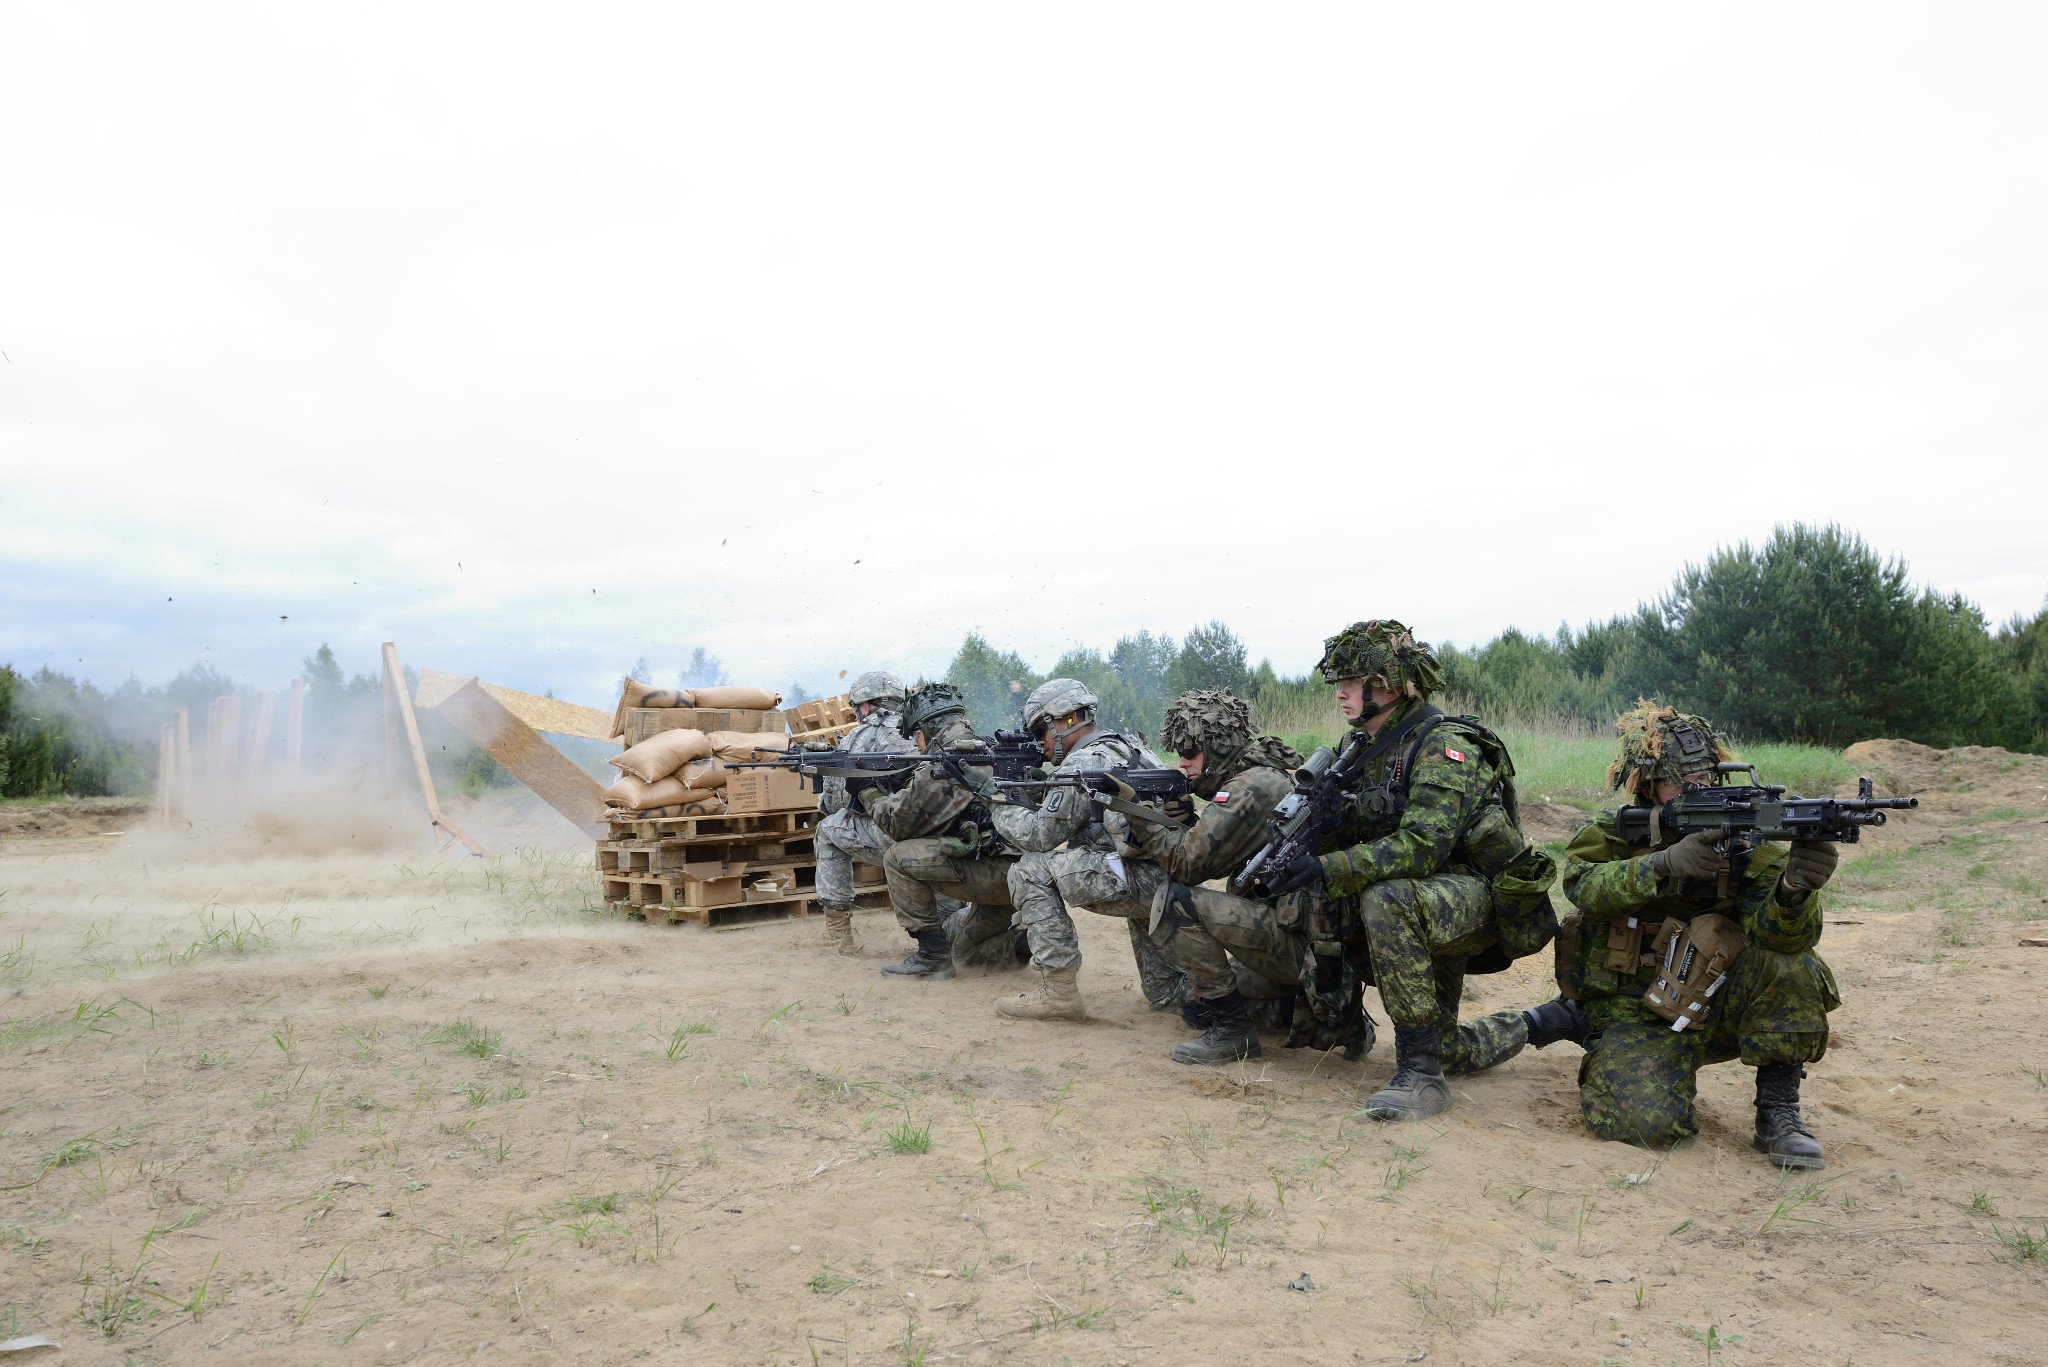 Poland. 29 May 2014 - Paratroopers from 3rd Battalion, Princess Patricia's Canadian Light Infantry, the U.S. 1-503 Airborne and the Polish 16th Airborne Battalion wait for the C4 to detonate before they can advance on an obstacle during training at the Czertyn.